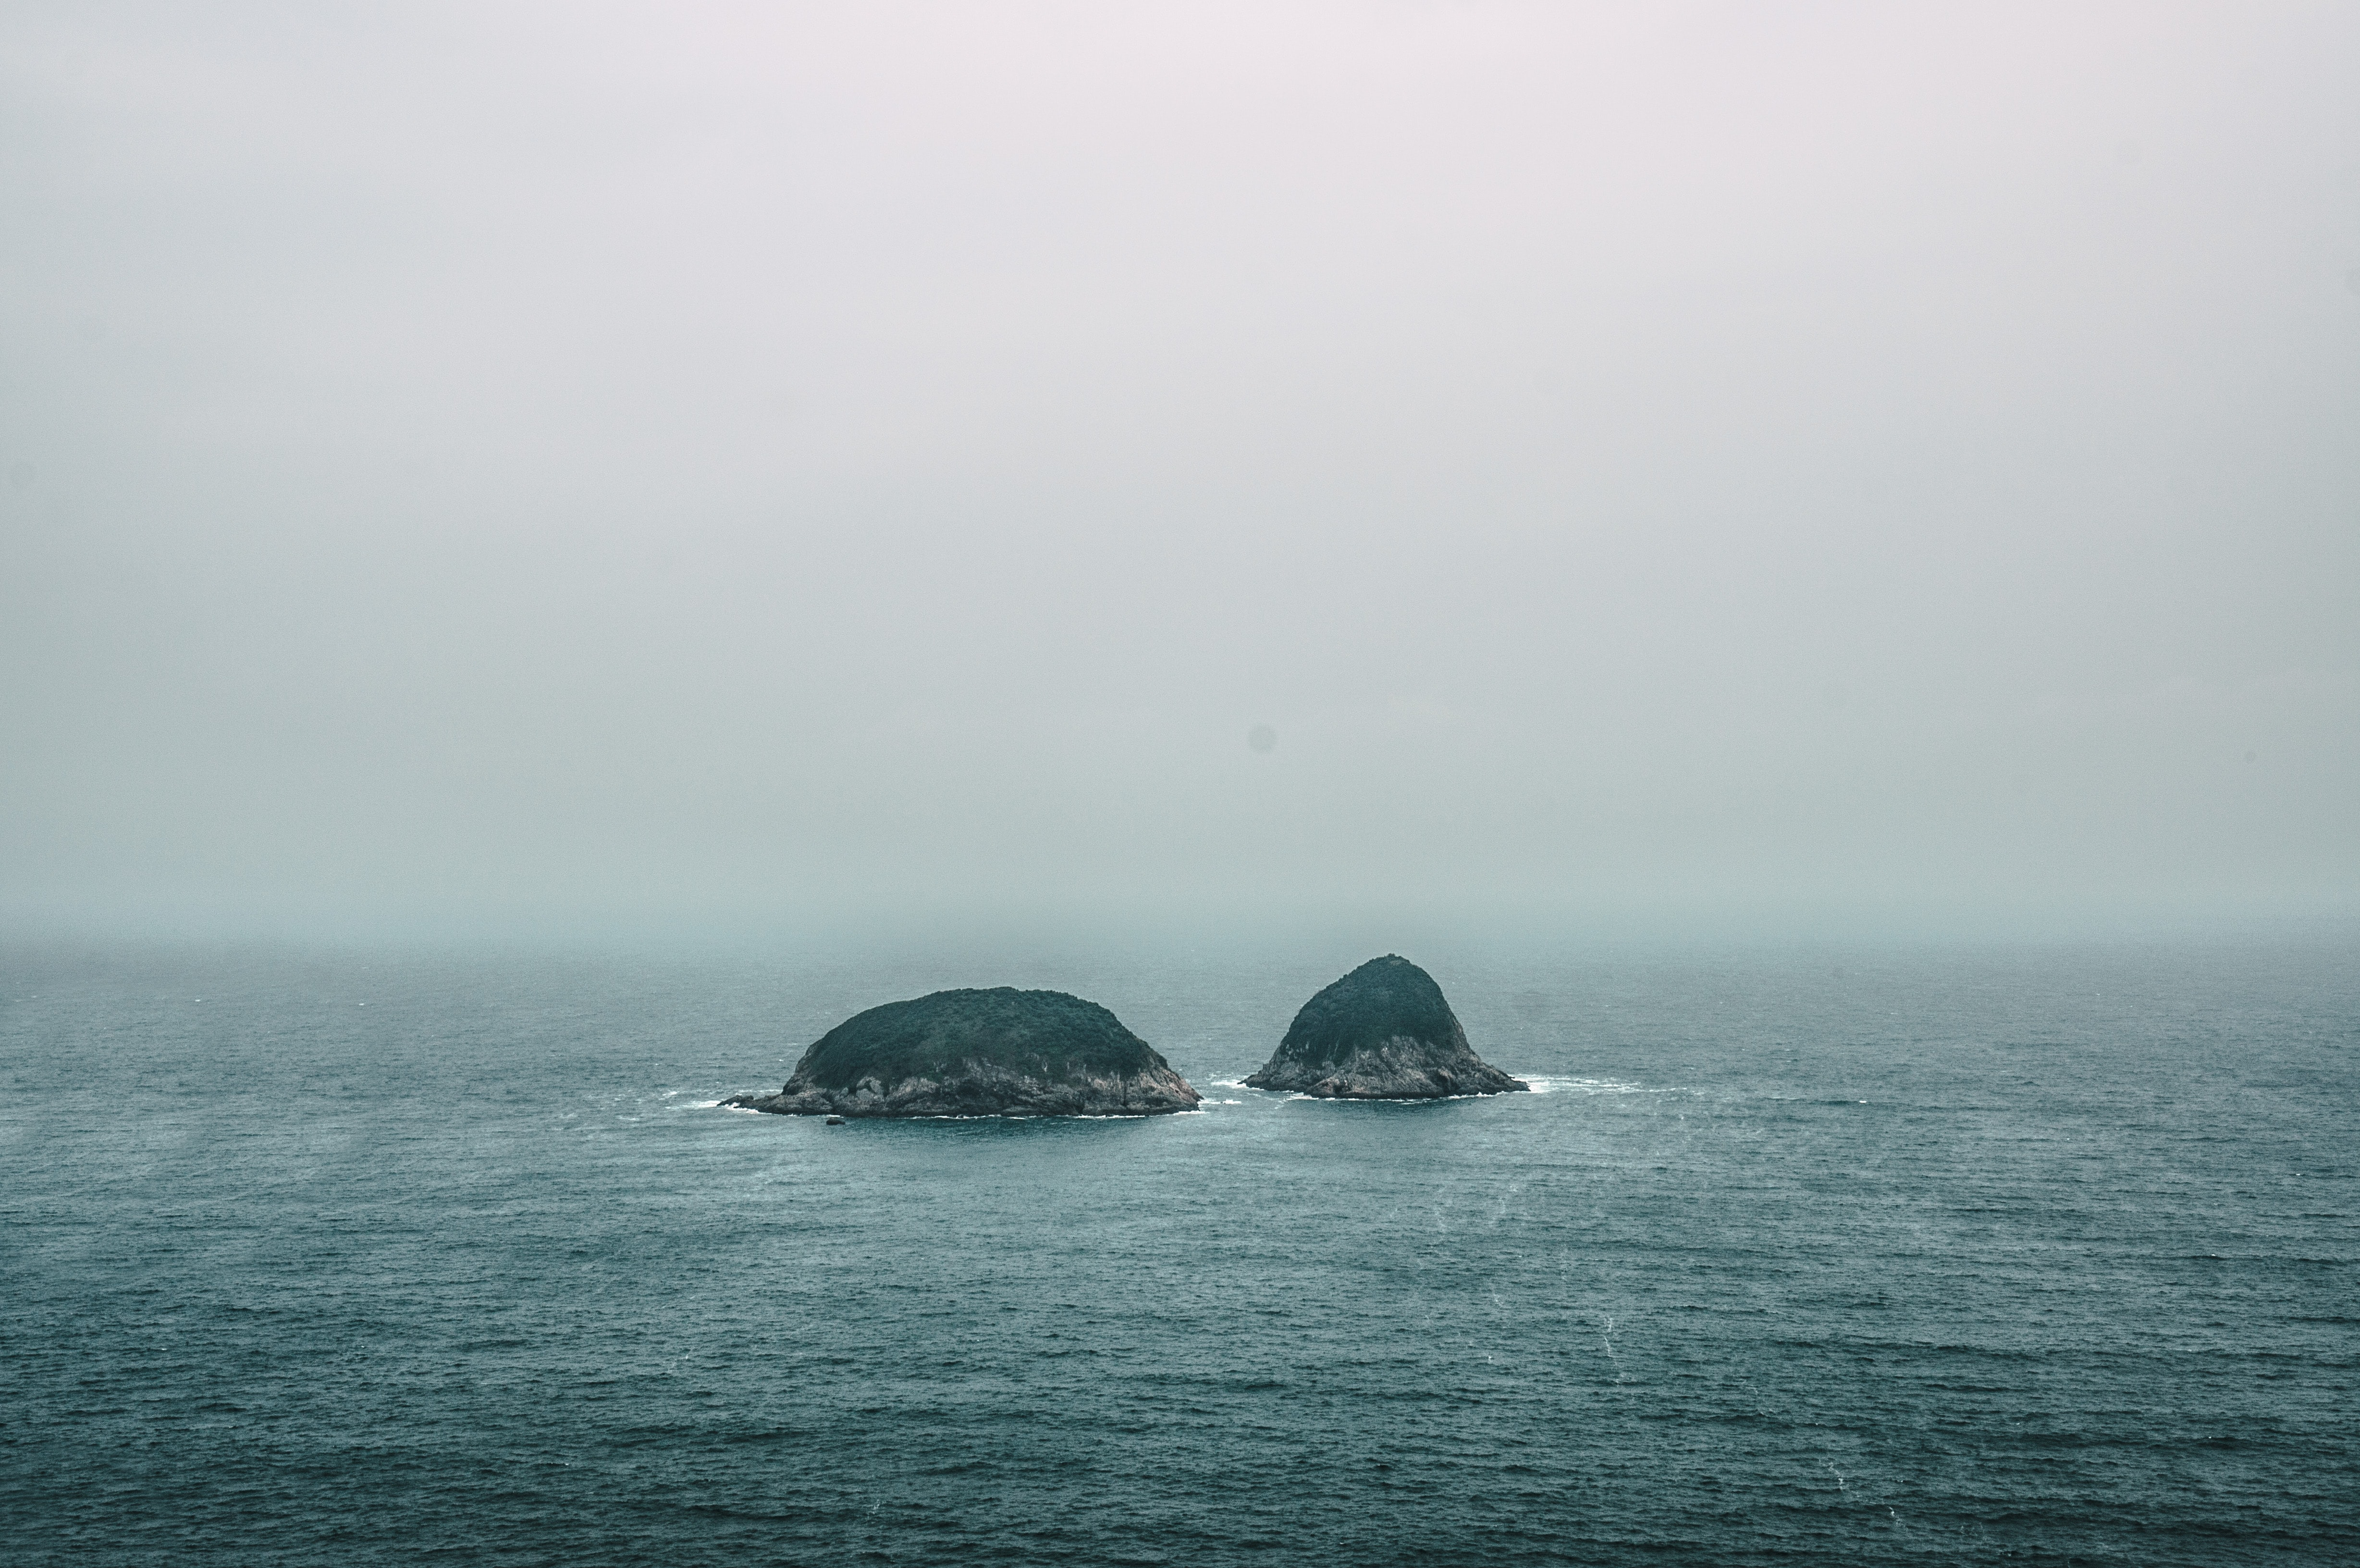 two gray rock formations on the middle of sea at daytime